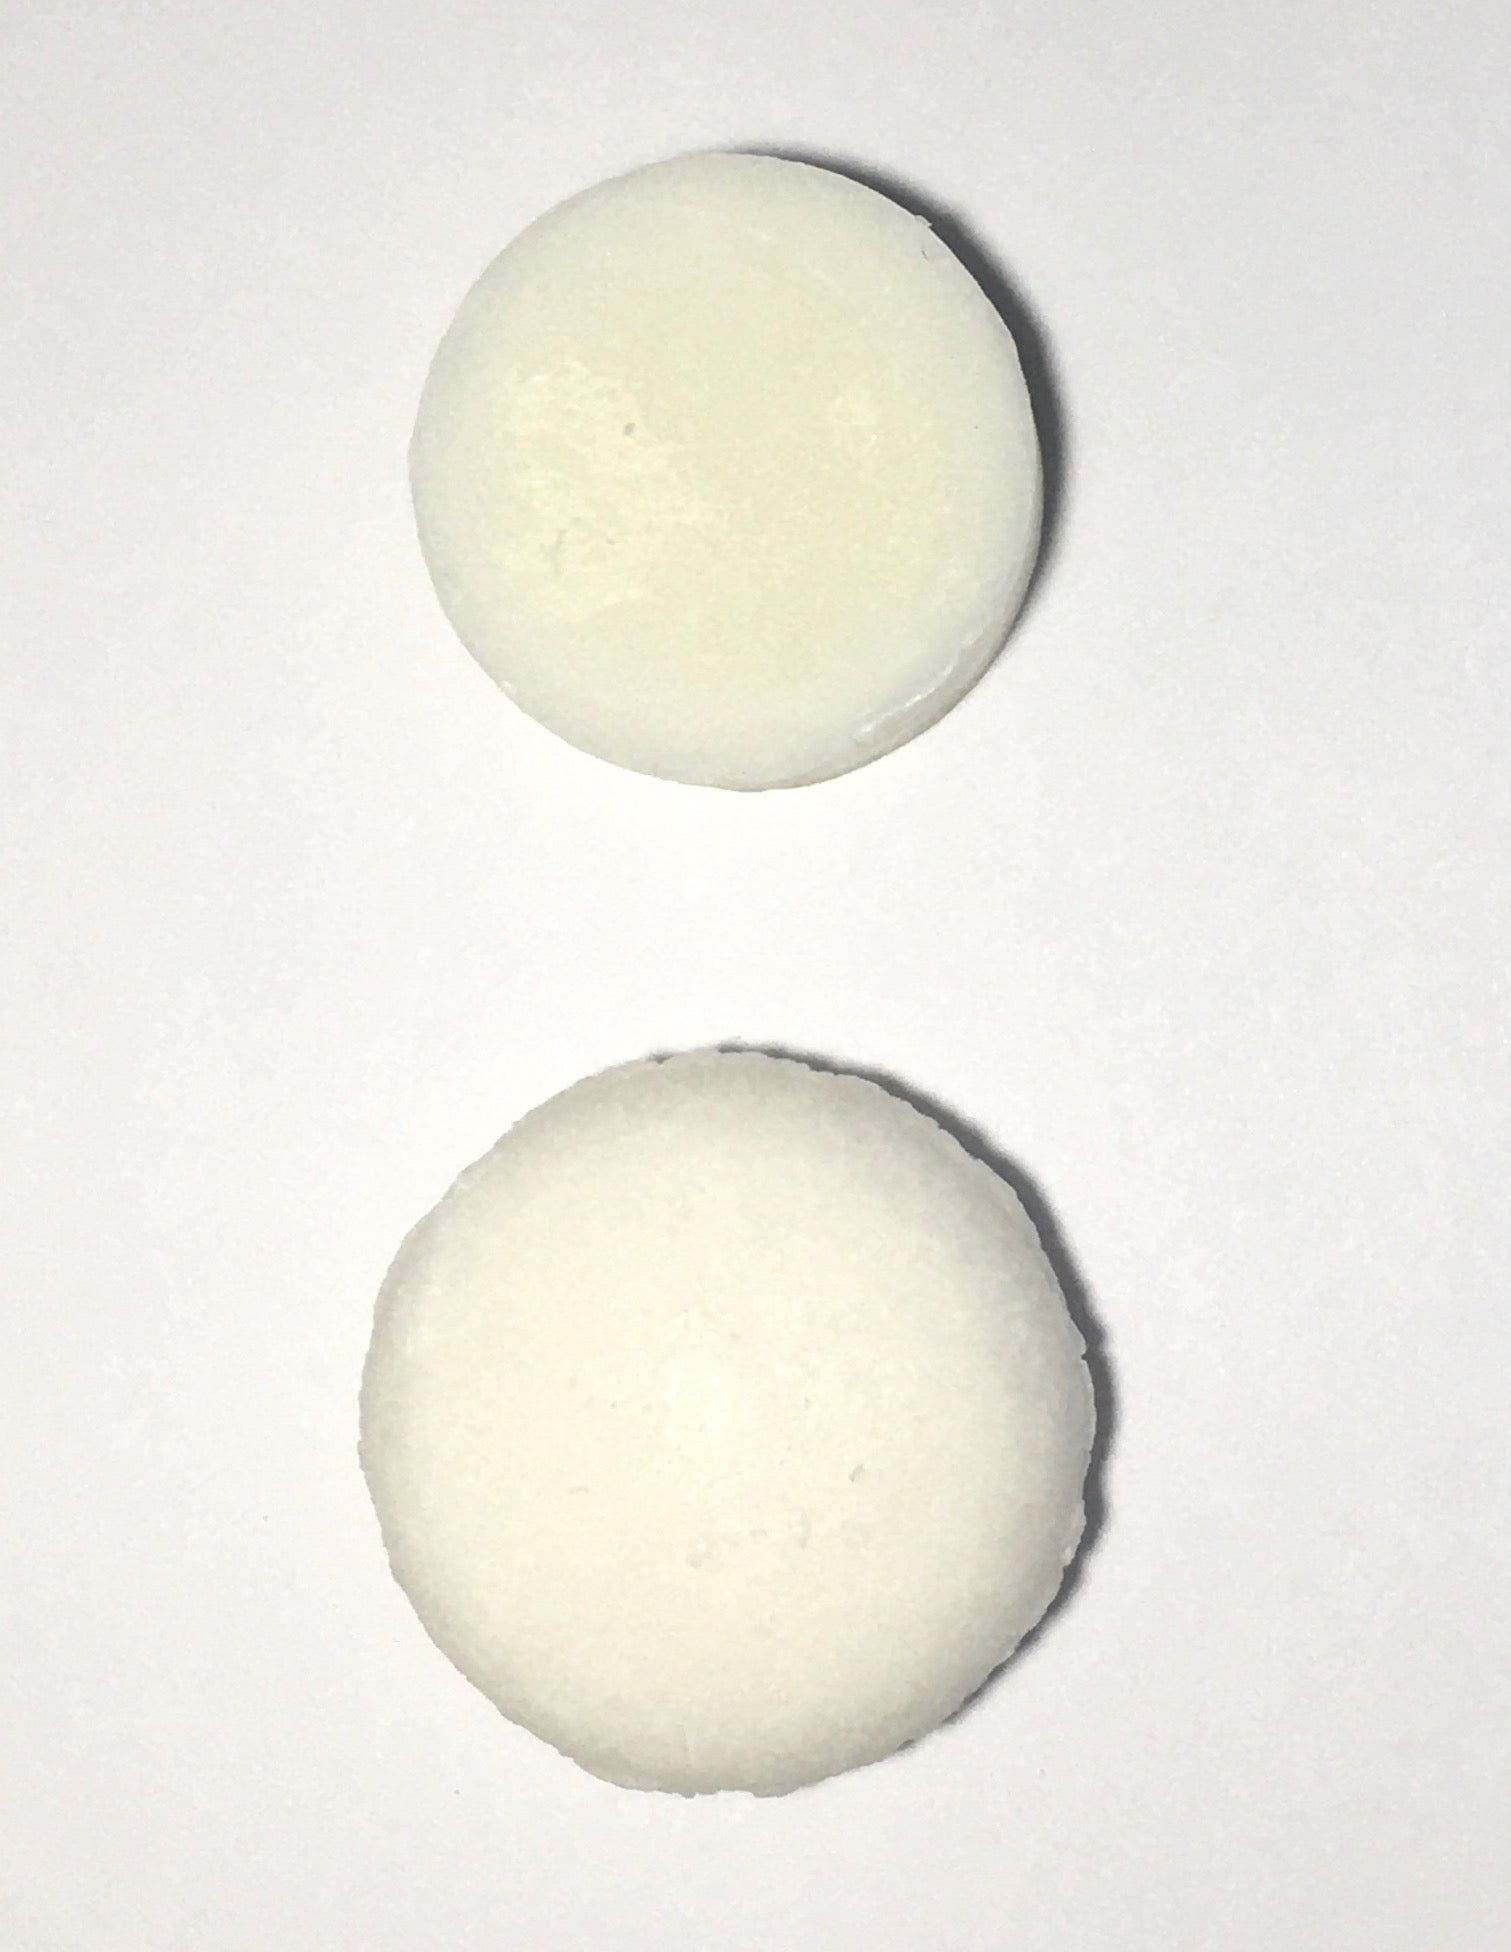 Concentrated Shampoo and Conditioner Solids - no packaging. - Skin Probiotics